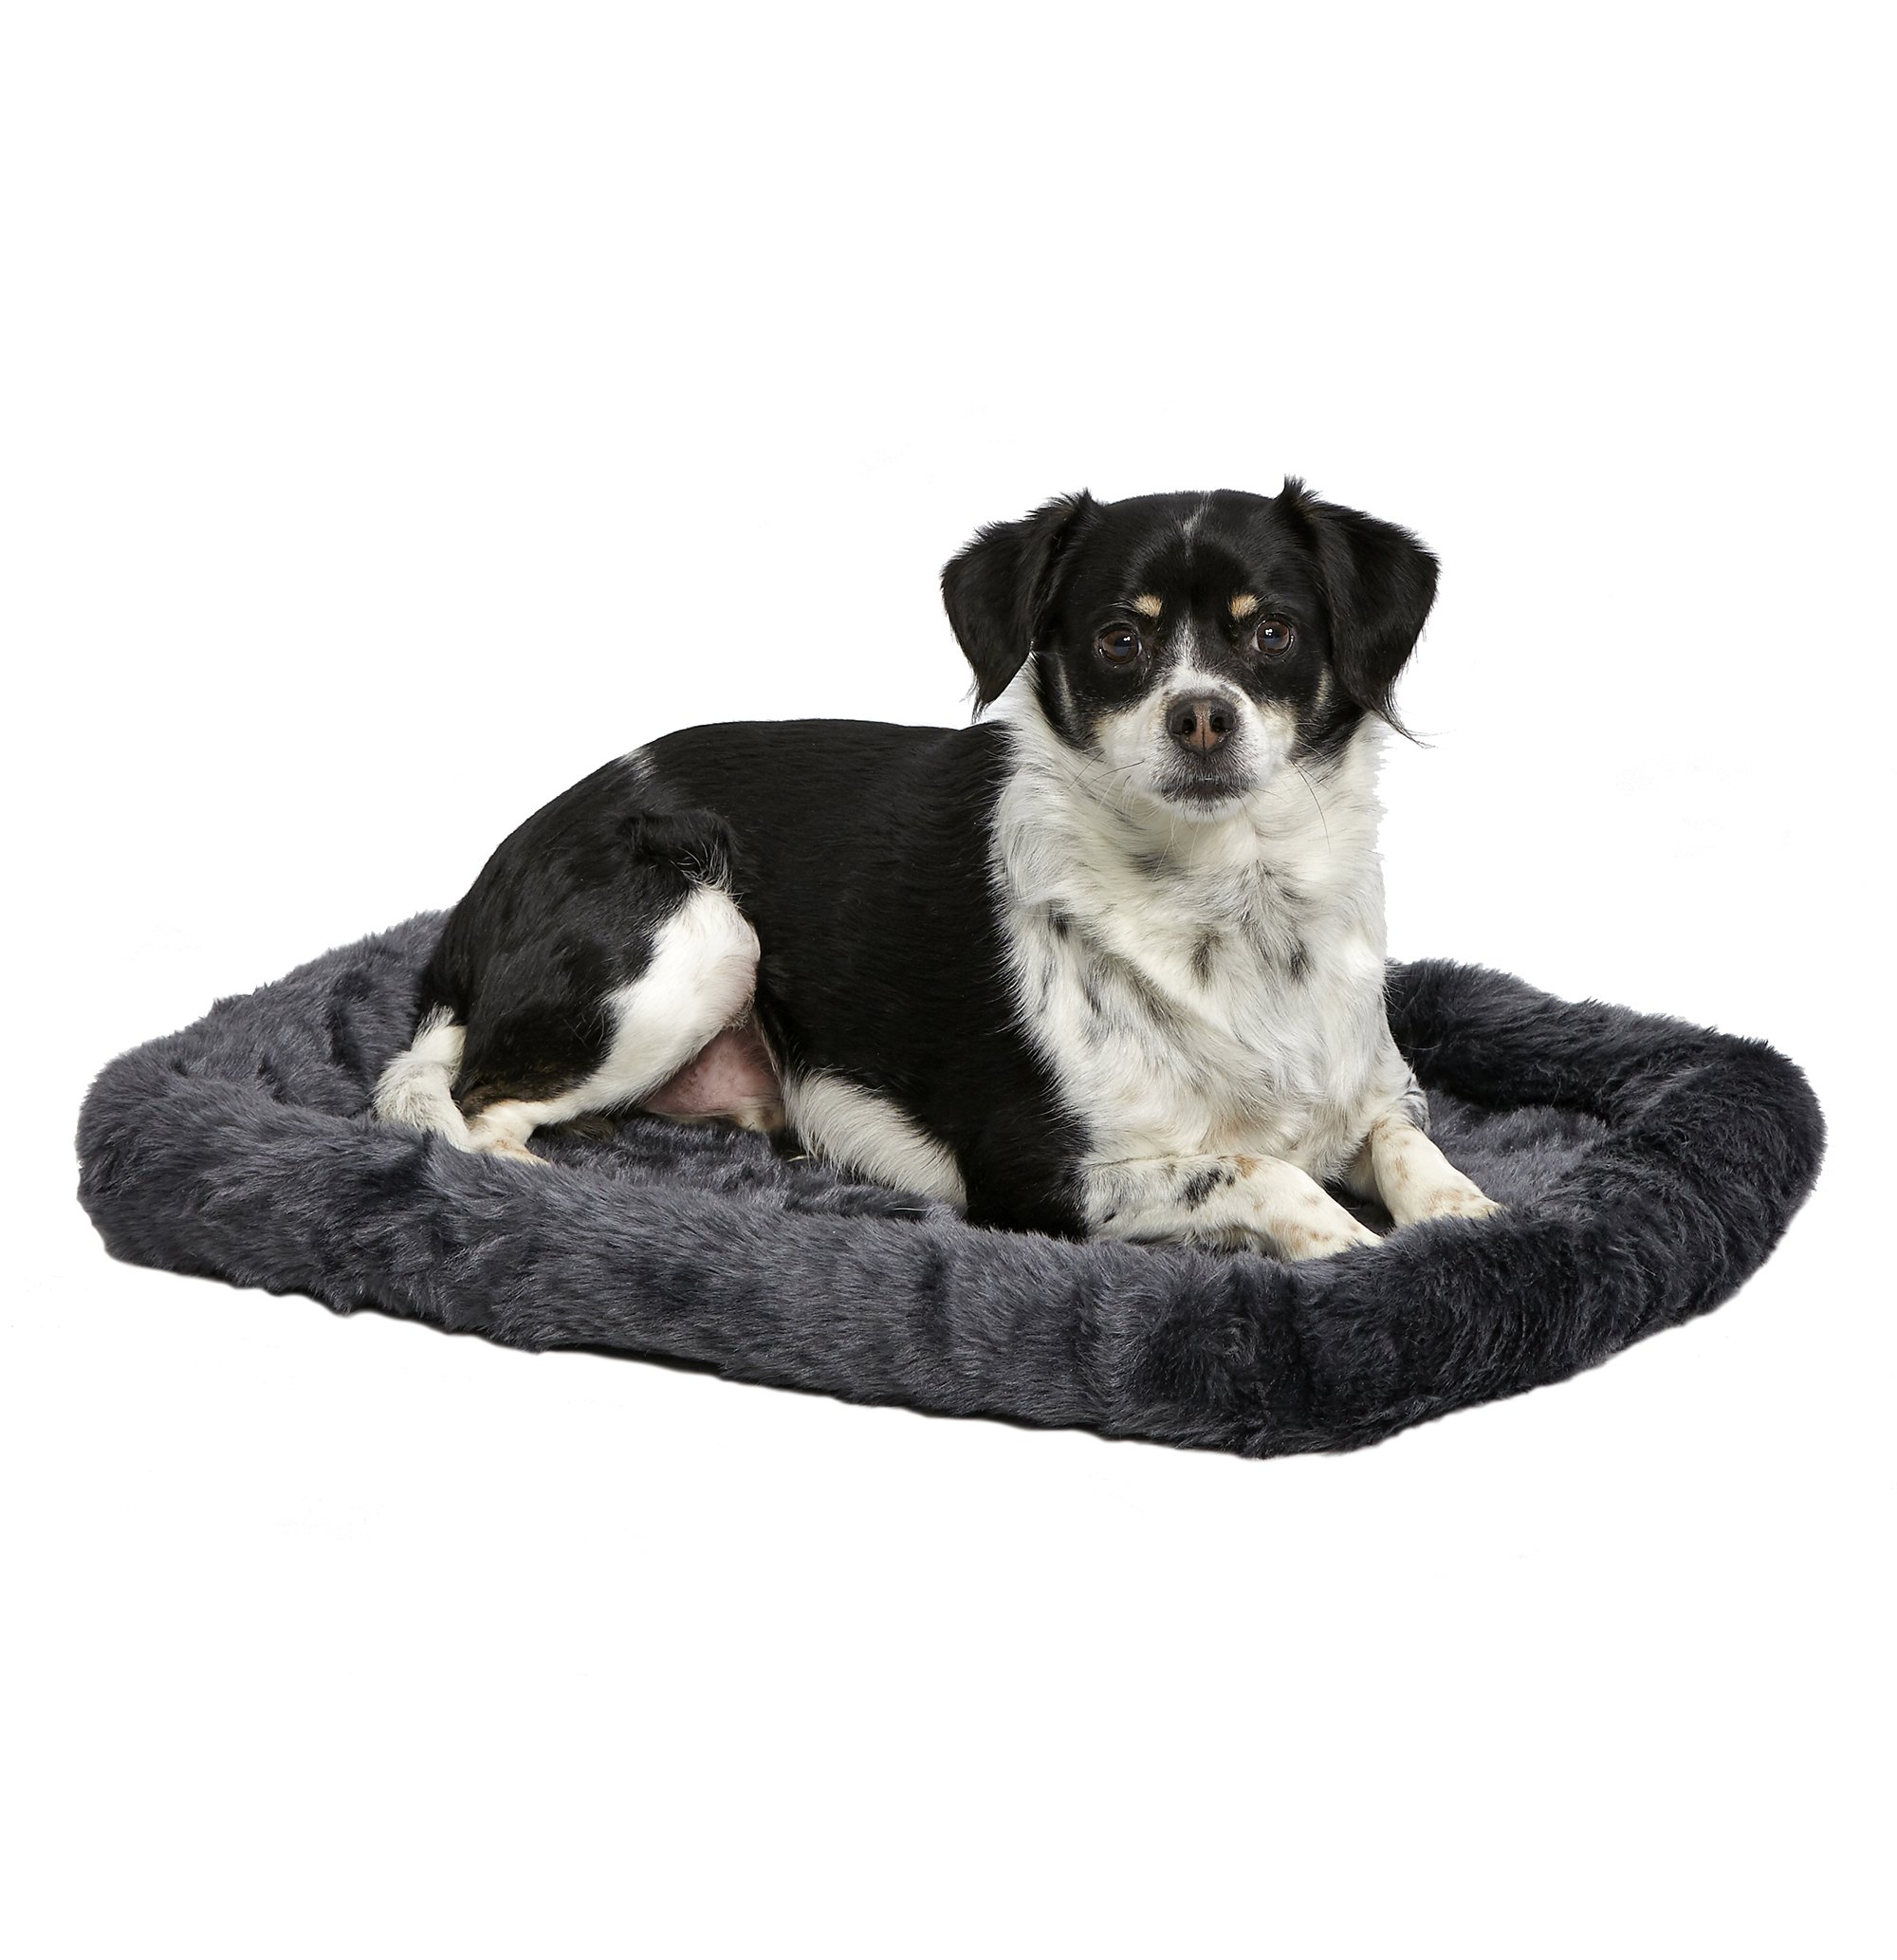 MidWest Deluxe Bolster Pet Bed for Dogs & Cats; Pet Bed Measures 24L x 18W x 2.25H Inches & Fits Standard 24'' L Wire Dog Crate, Gray